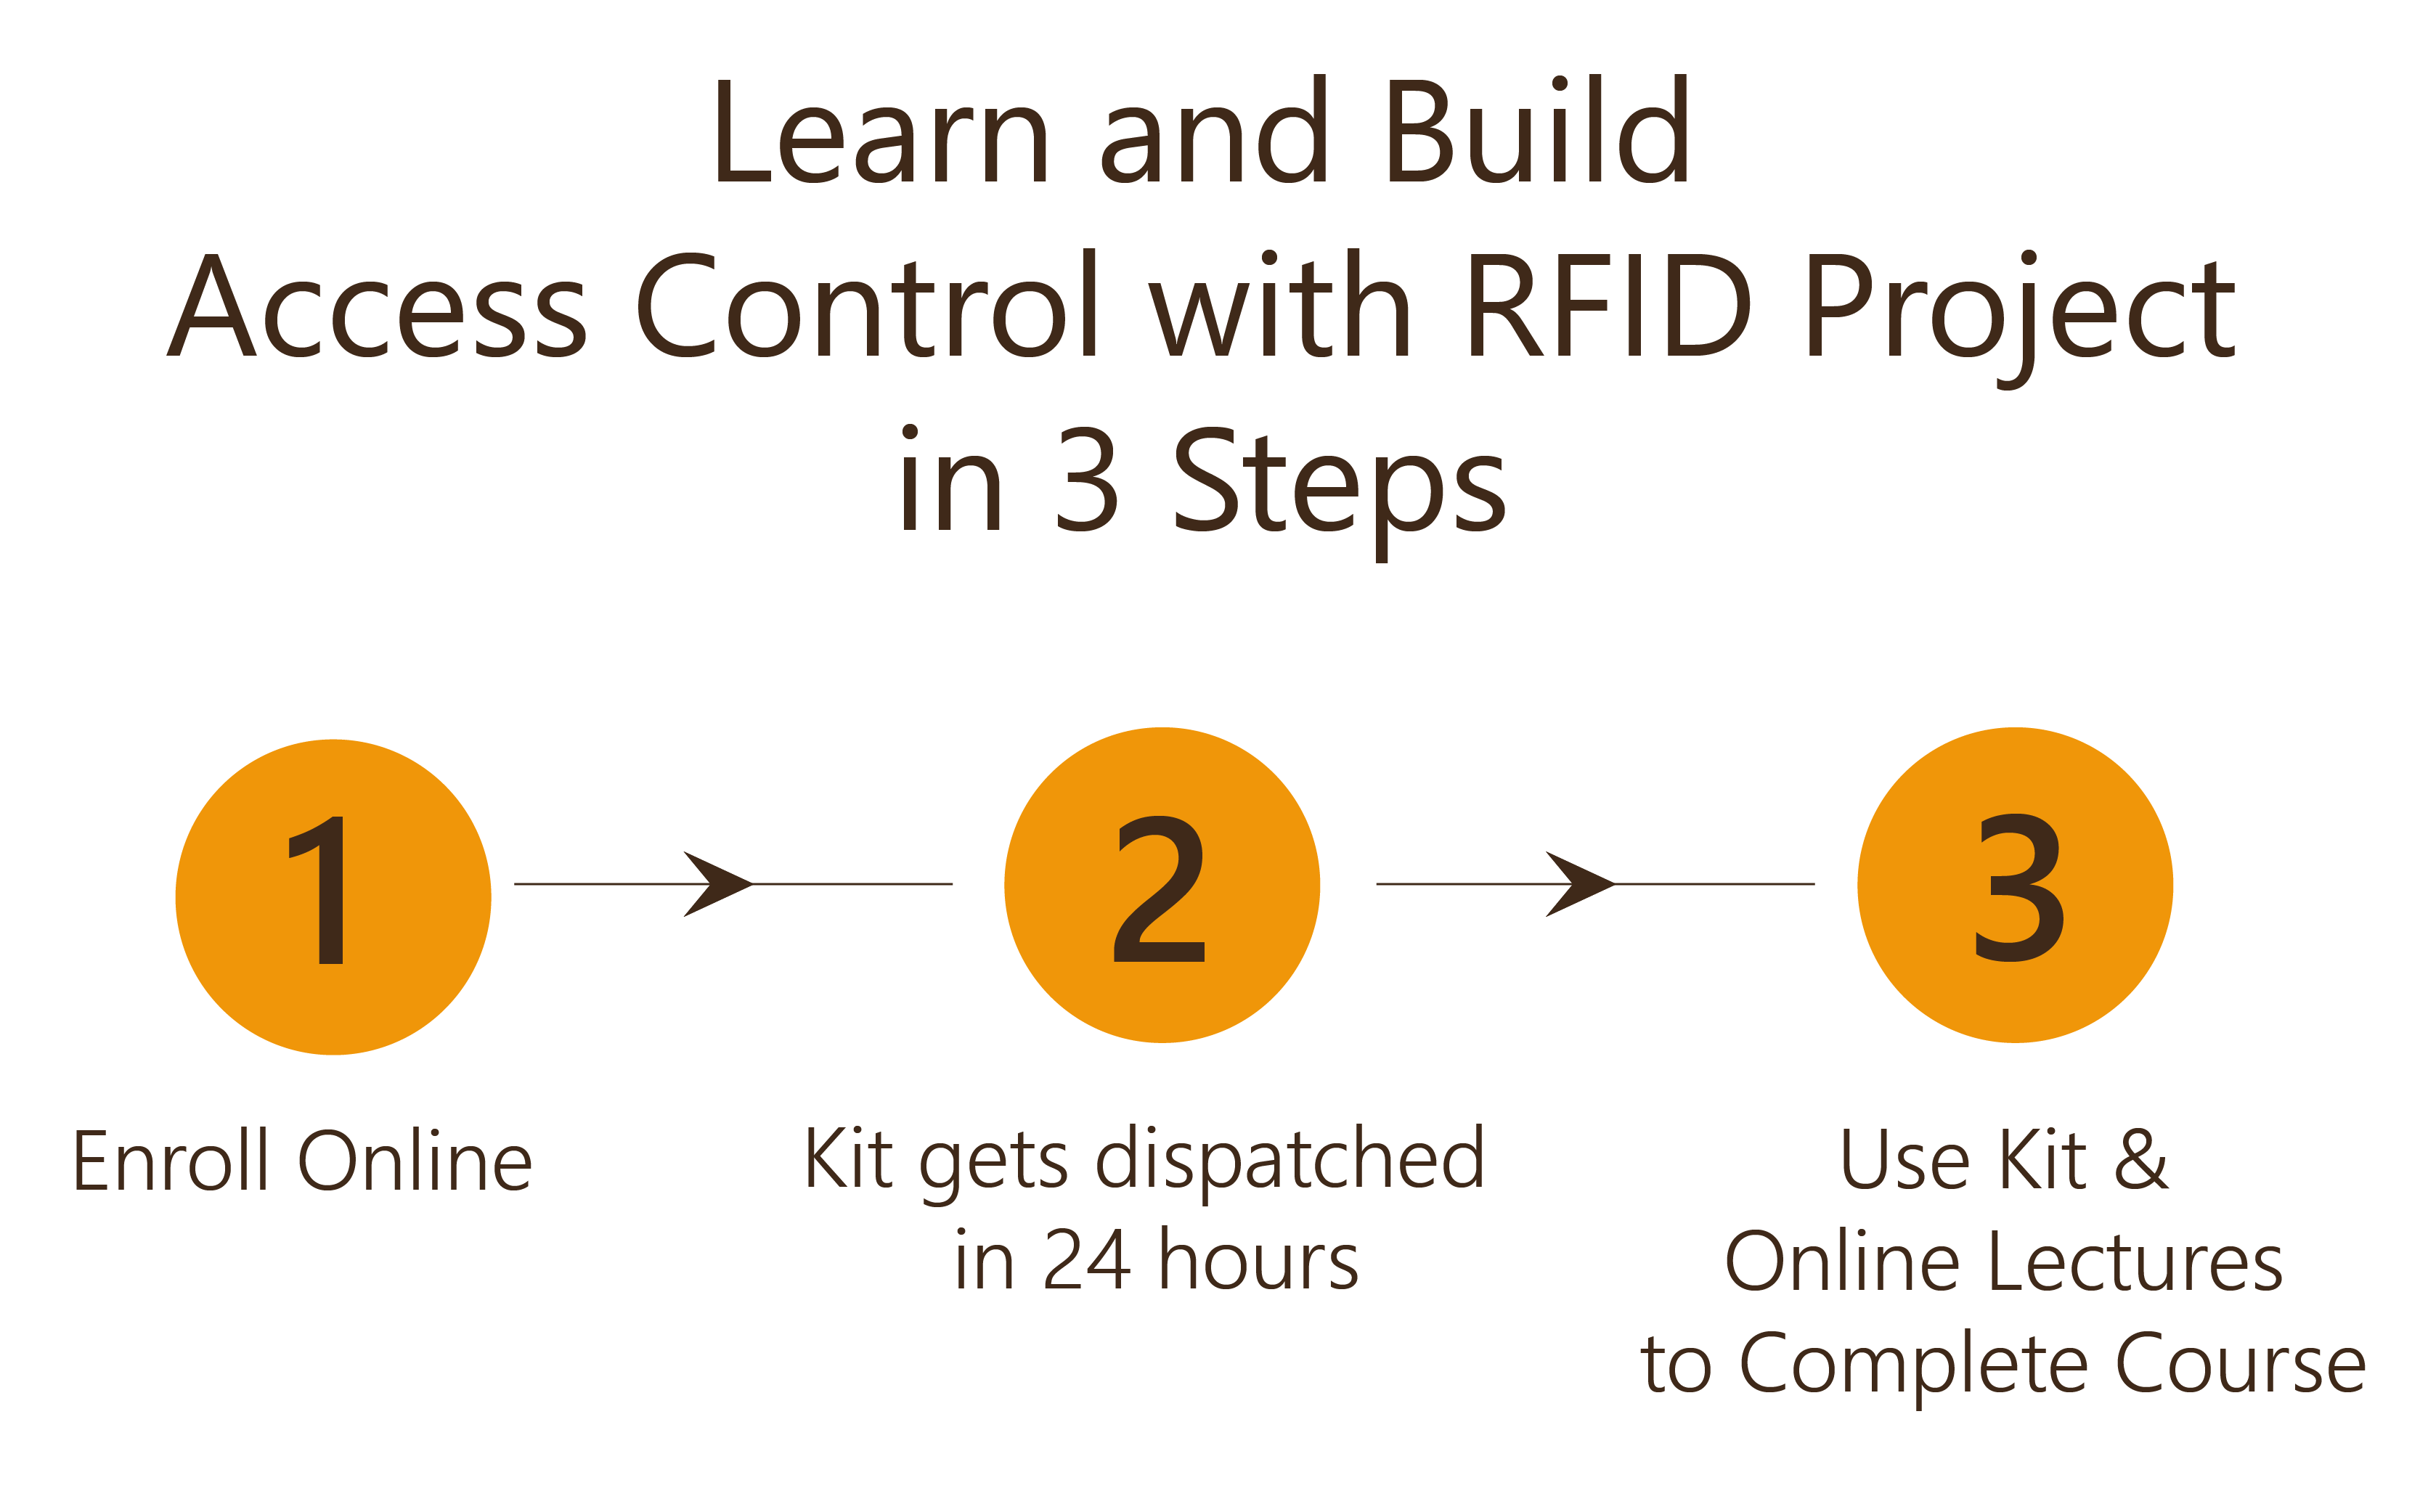 Learn and Build Access Control with RFID Project in 3 Steps